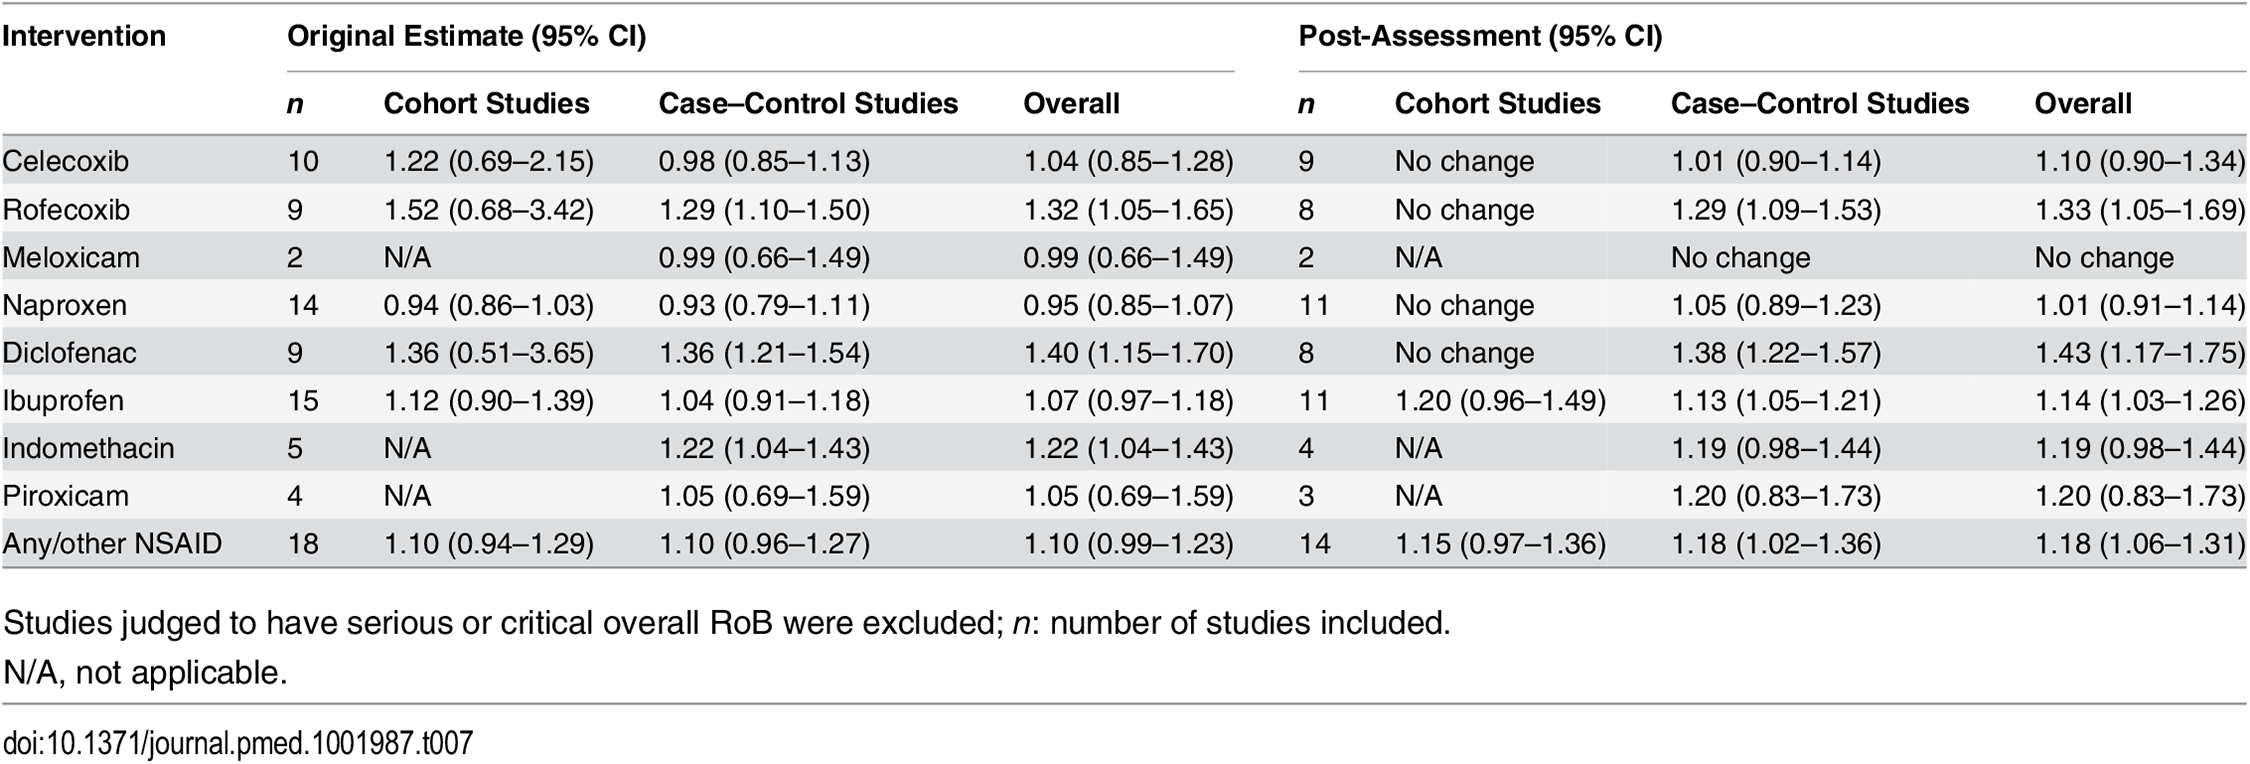 Risk estimates from meta-analyses: comparison of original estimates with post-assessment estimates for the systematic review by McGettigan and Henry [<em class=&quot;ref&quot;>18</em>].